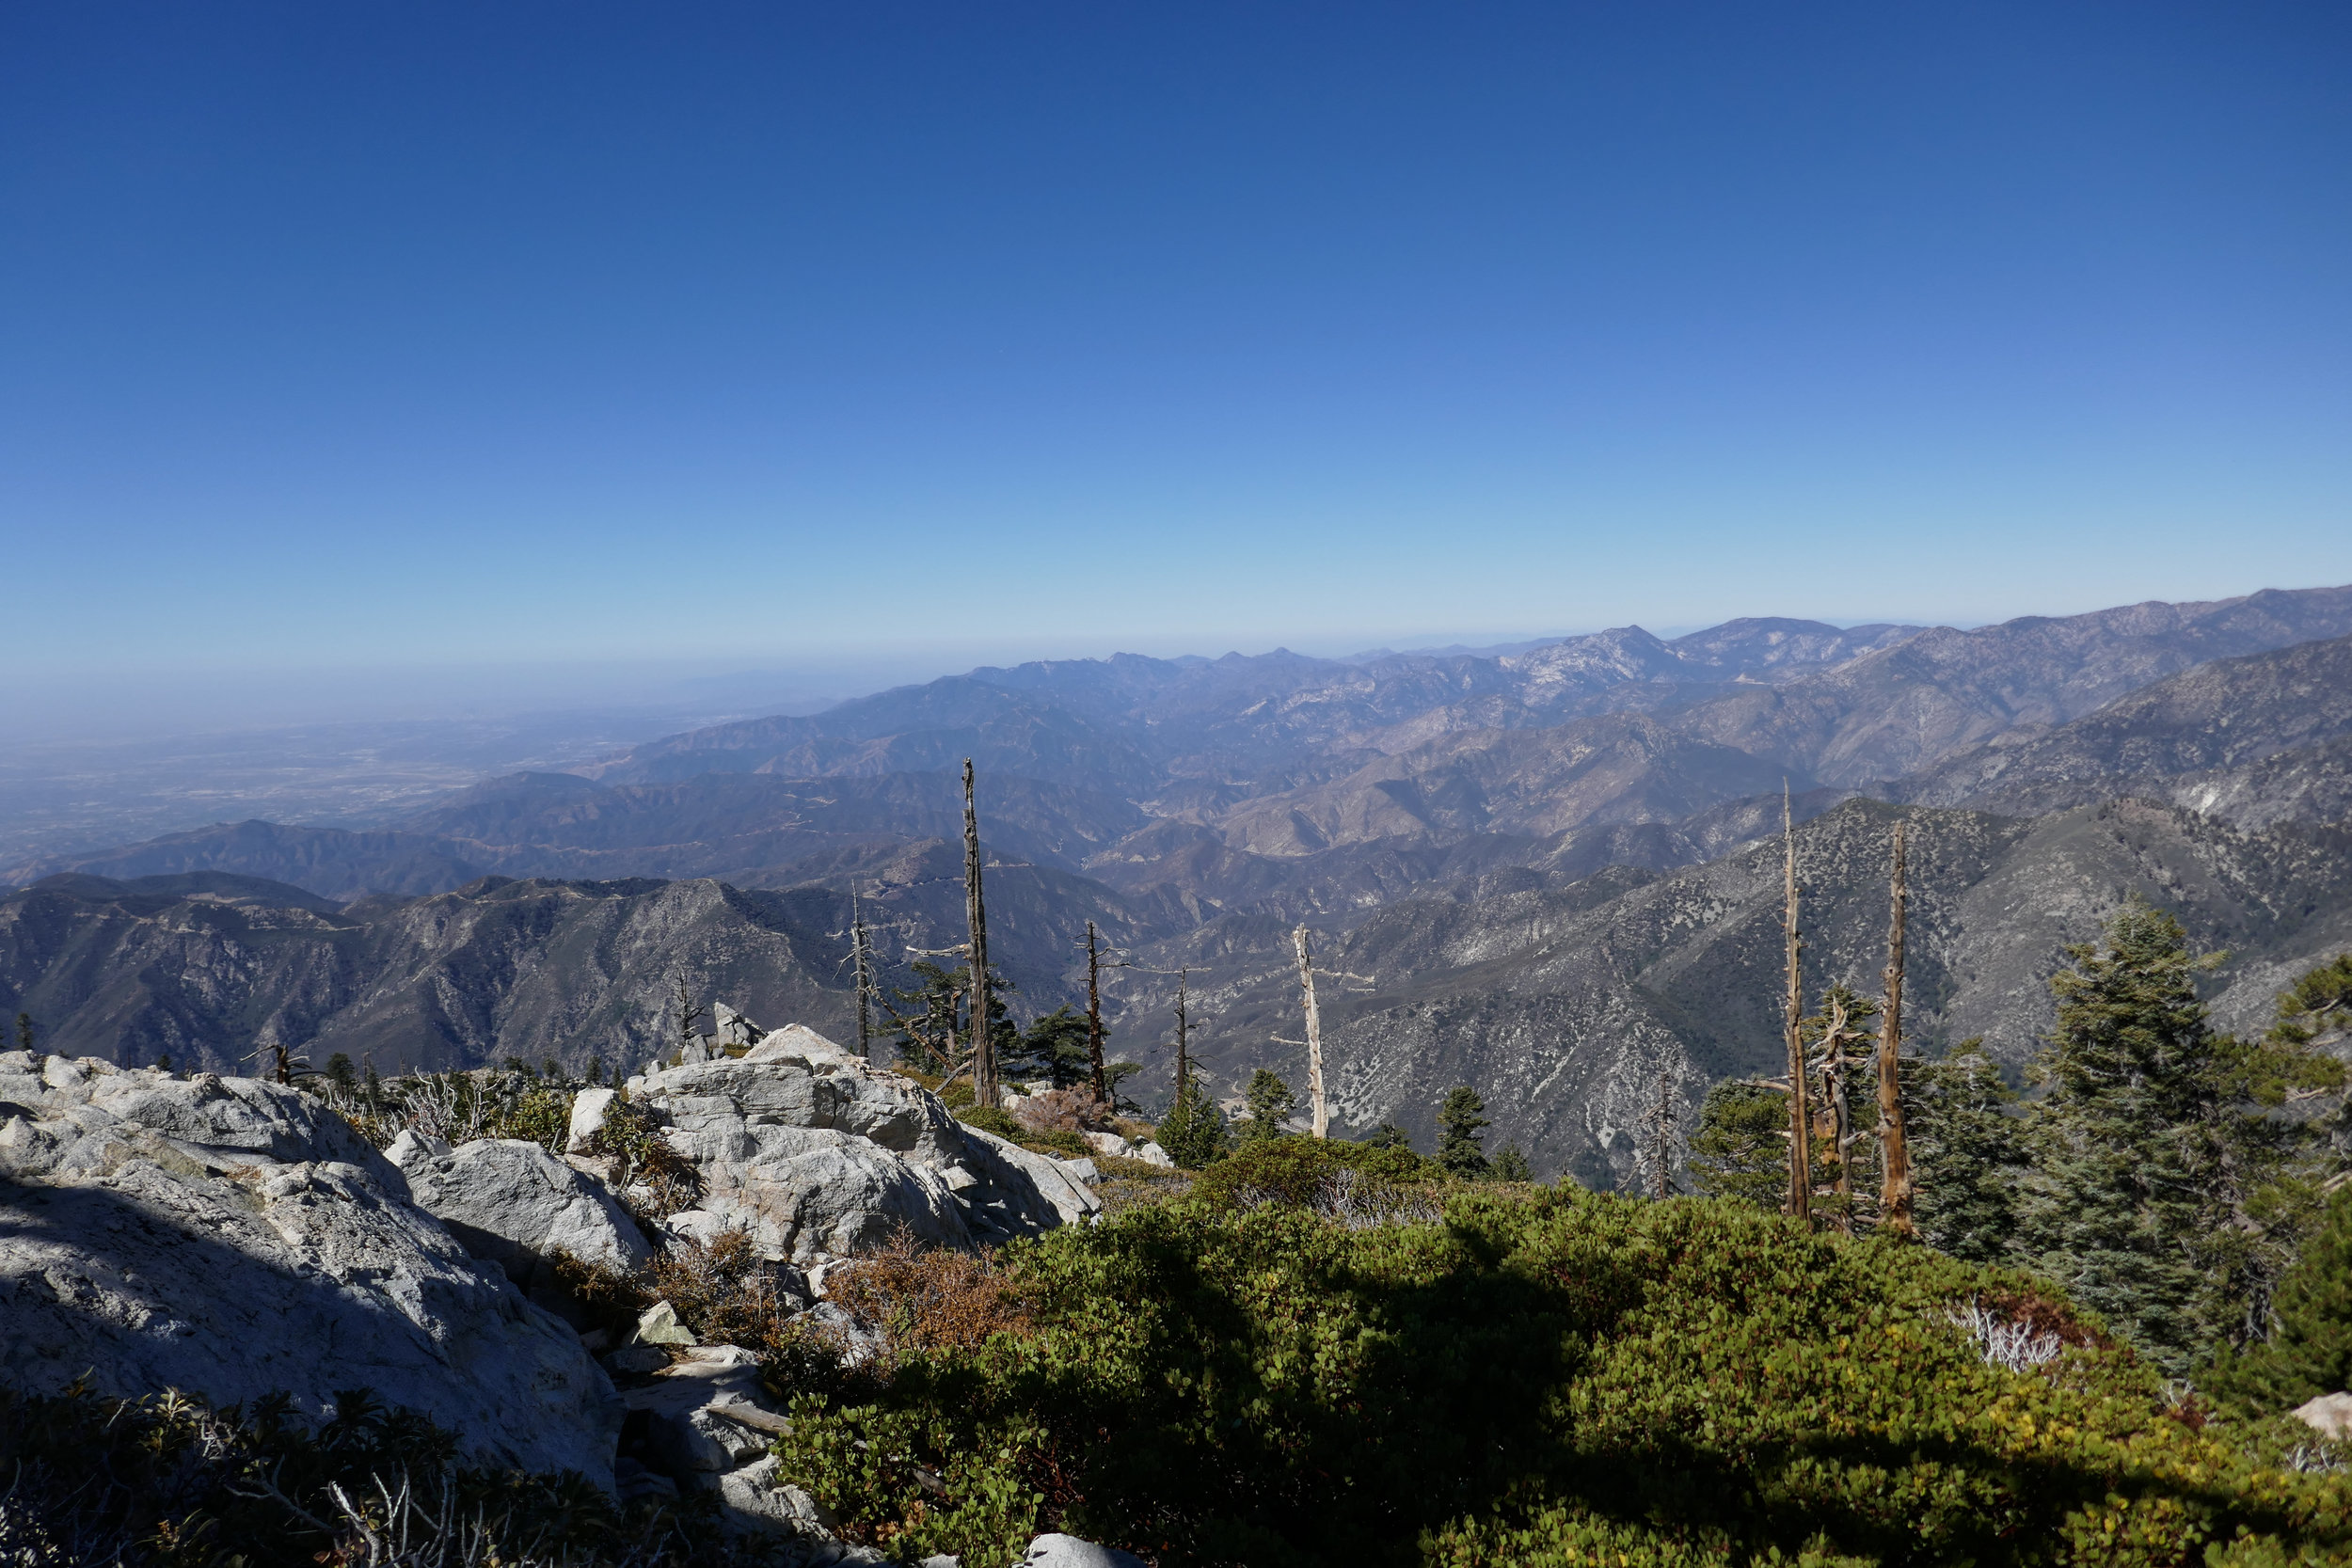 Look at this amazing view of the San Gabriel mountain range. Wow!